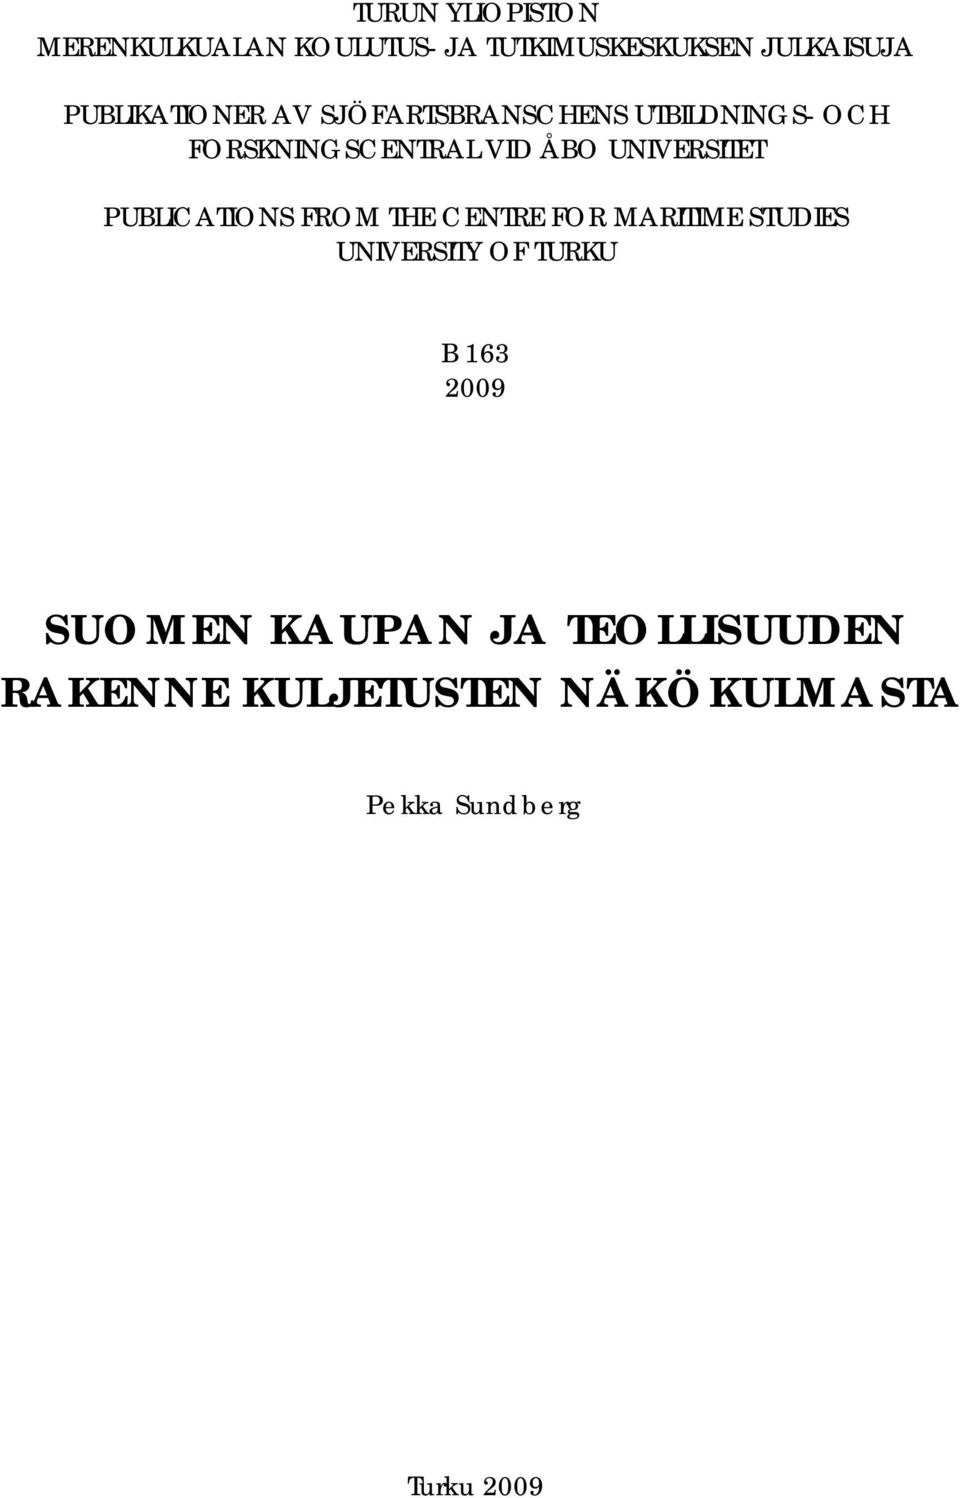 UNIVERSITET PUBLICATIONS FROM THE CENTRE FOR MARITIME STUDIES UNIVERSITY OF TURKU B